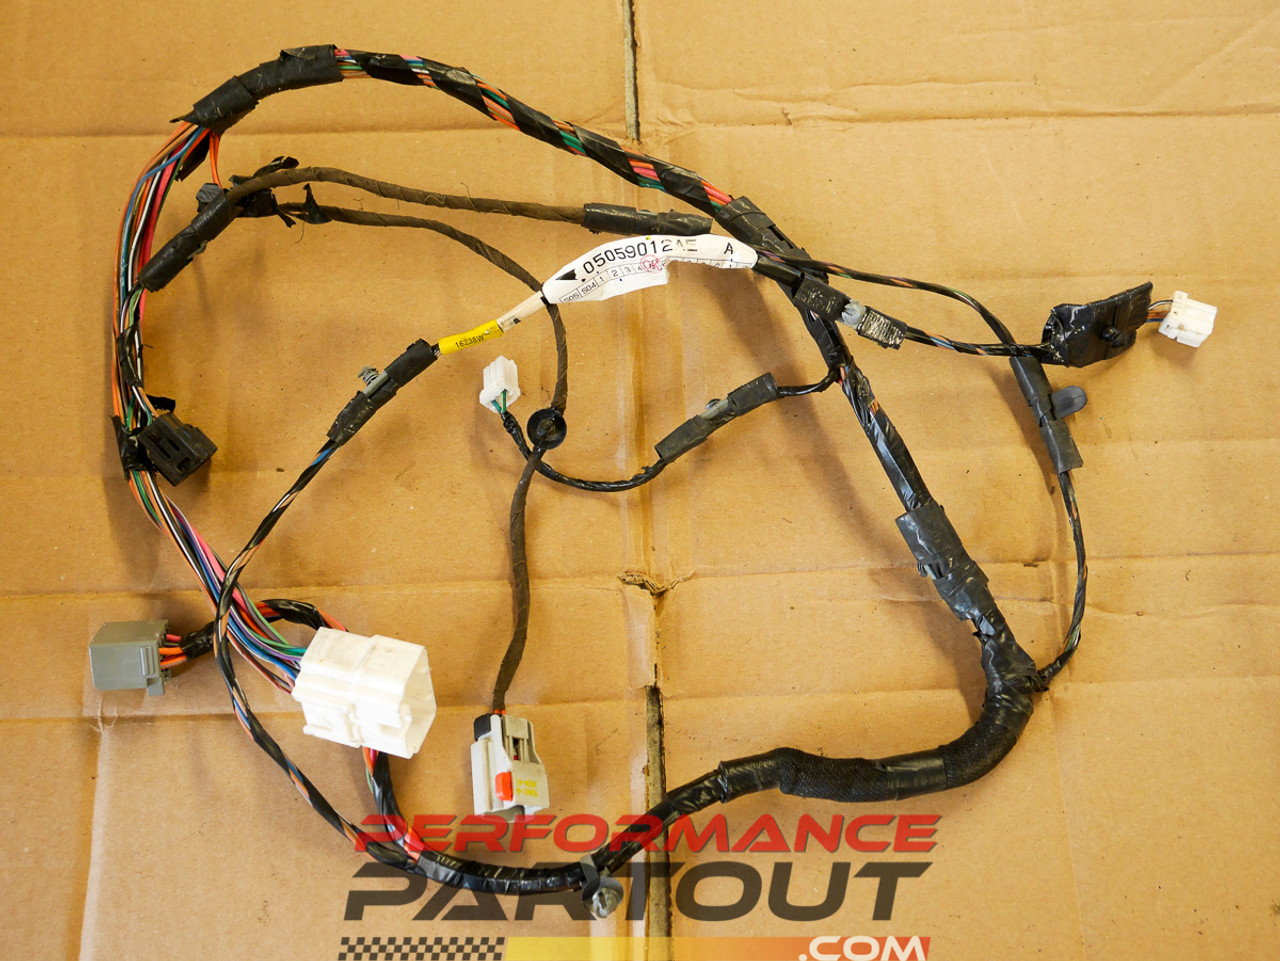 door wiring harness passenger right front magnum charger 300 05 07 performance partout [ 1200 x 901 Pixel ]